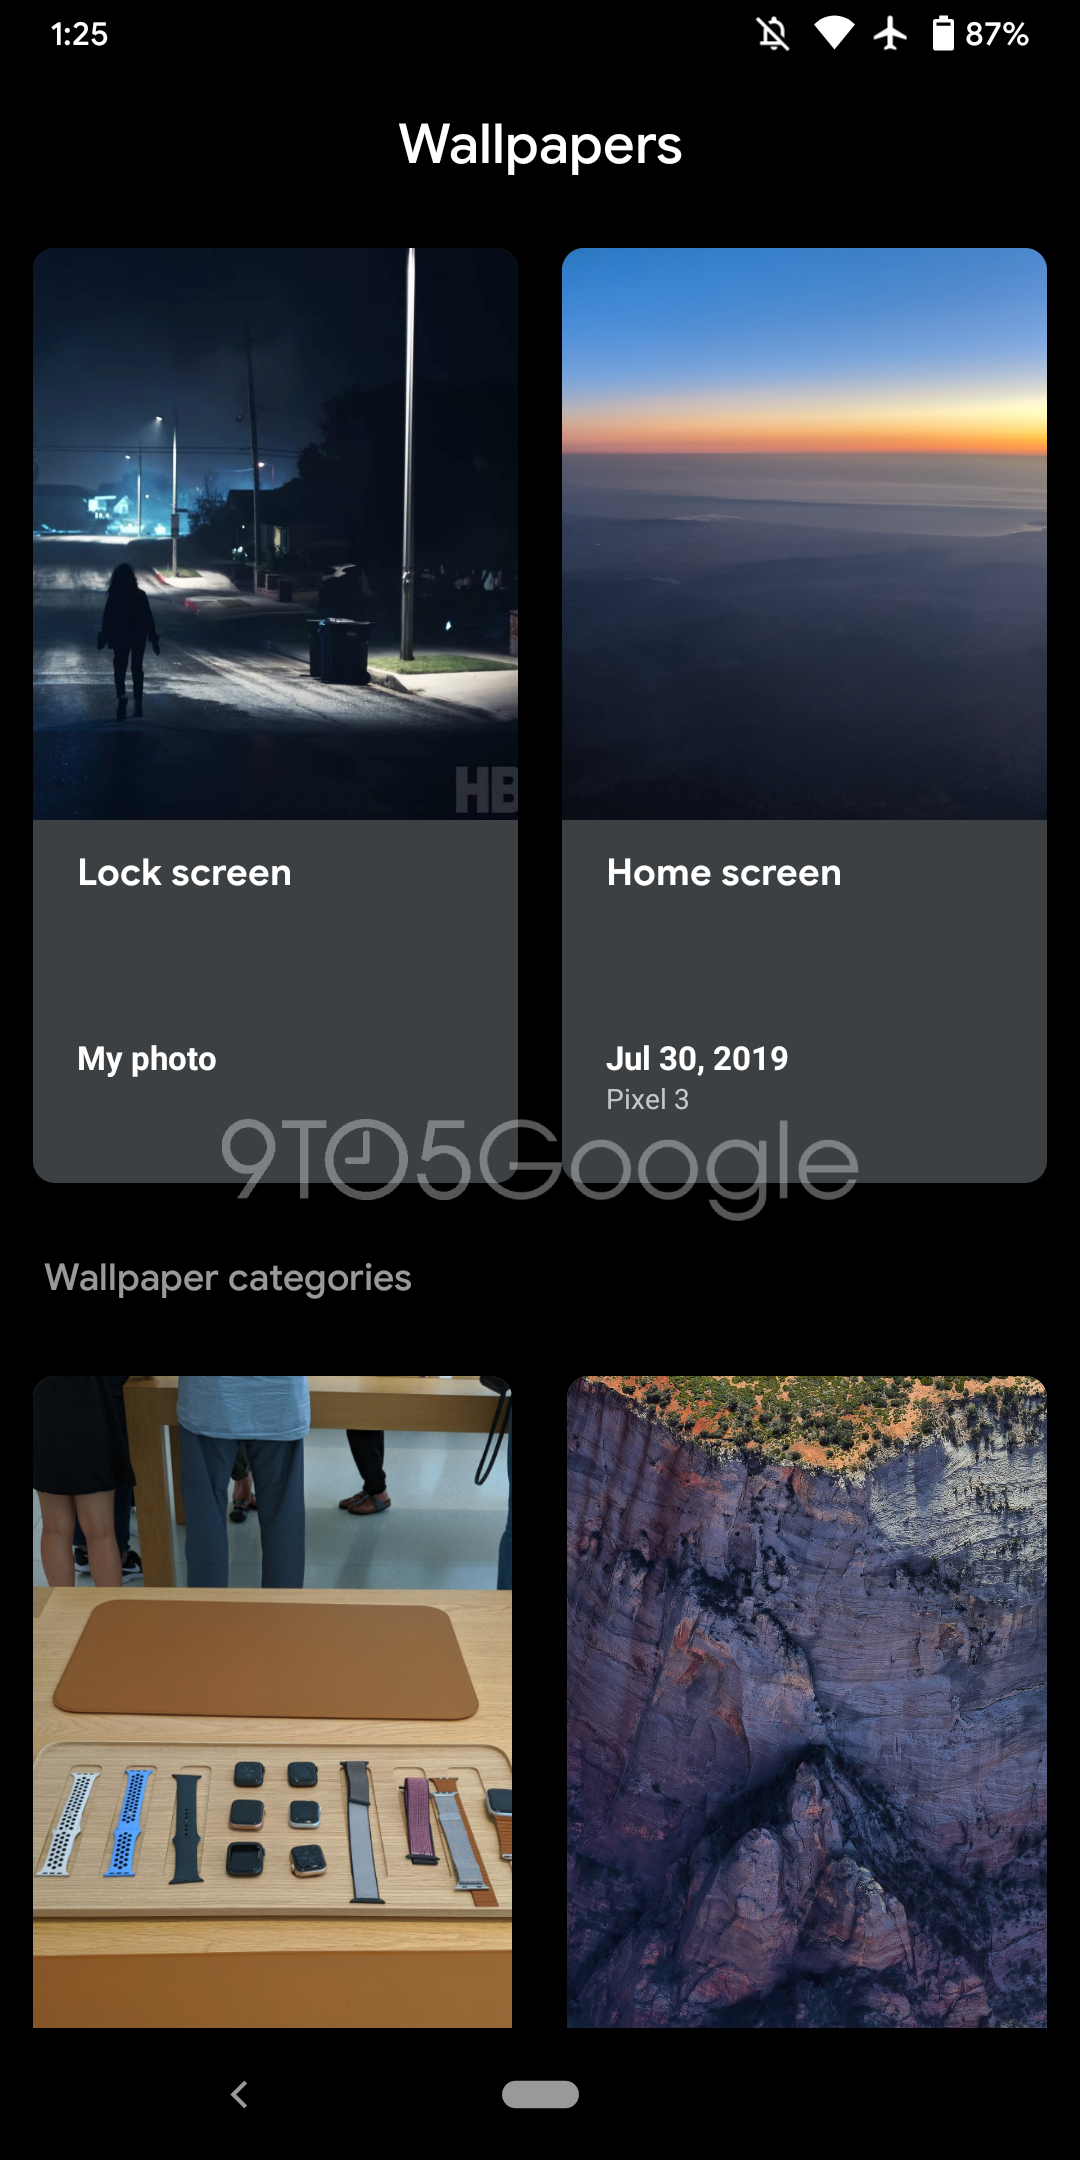 Download Google Wallpapers From The Pixel 4 9to5google